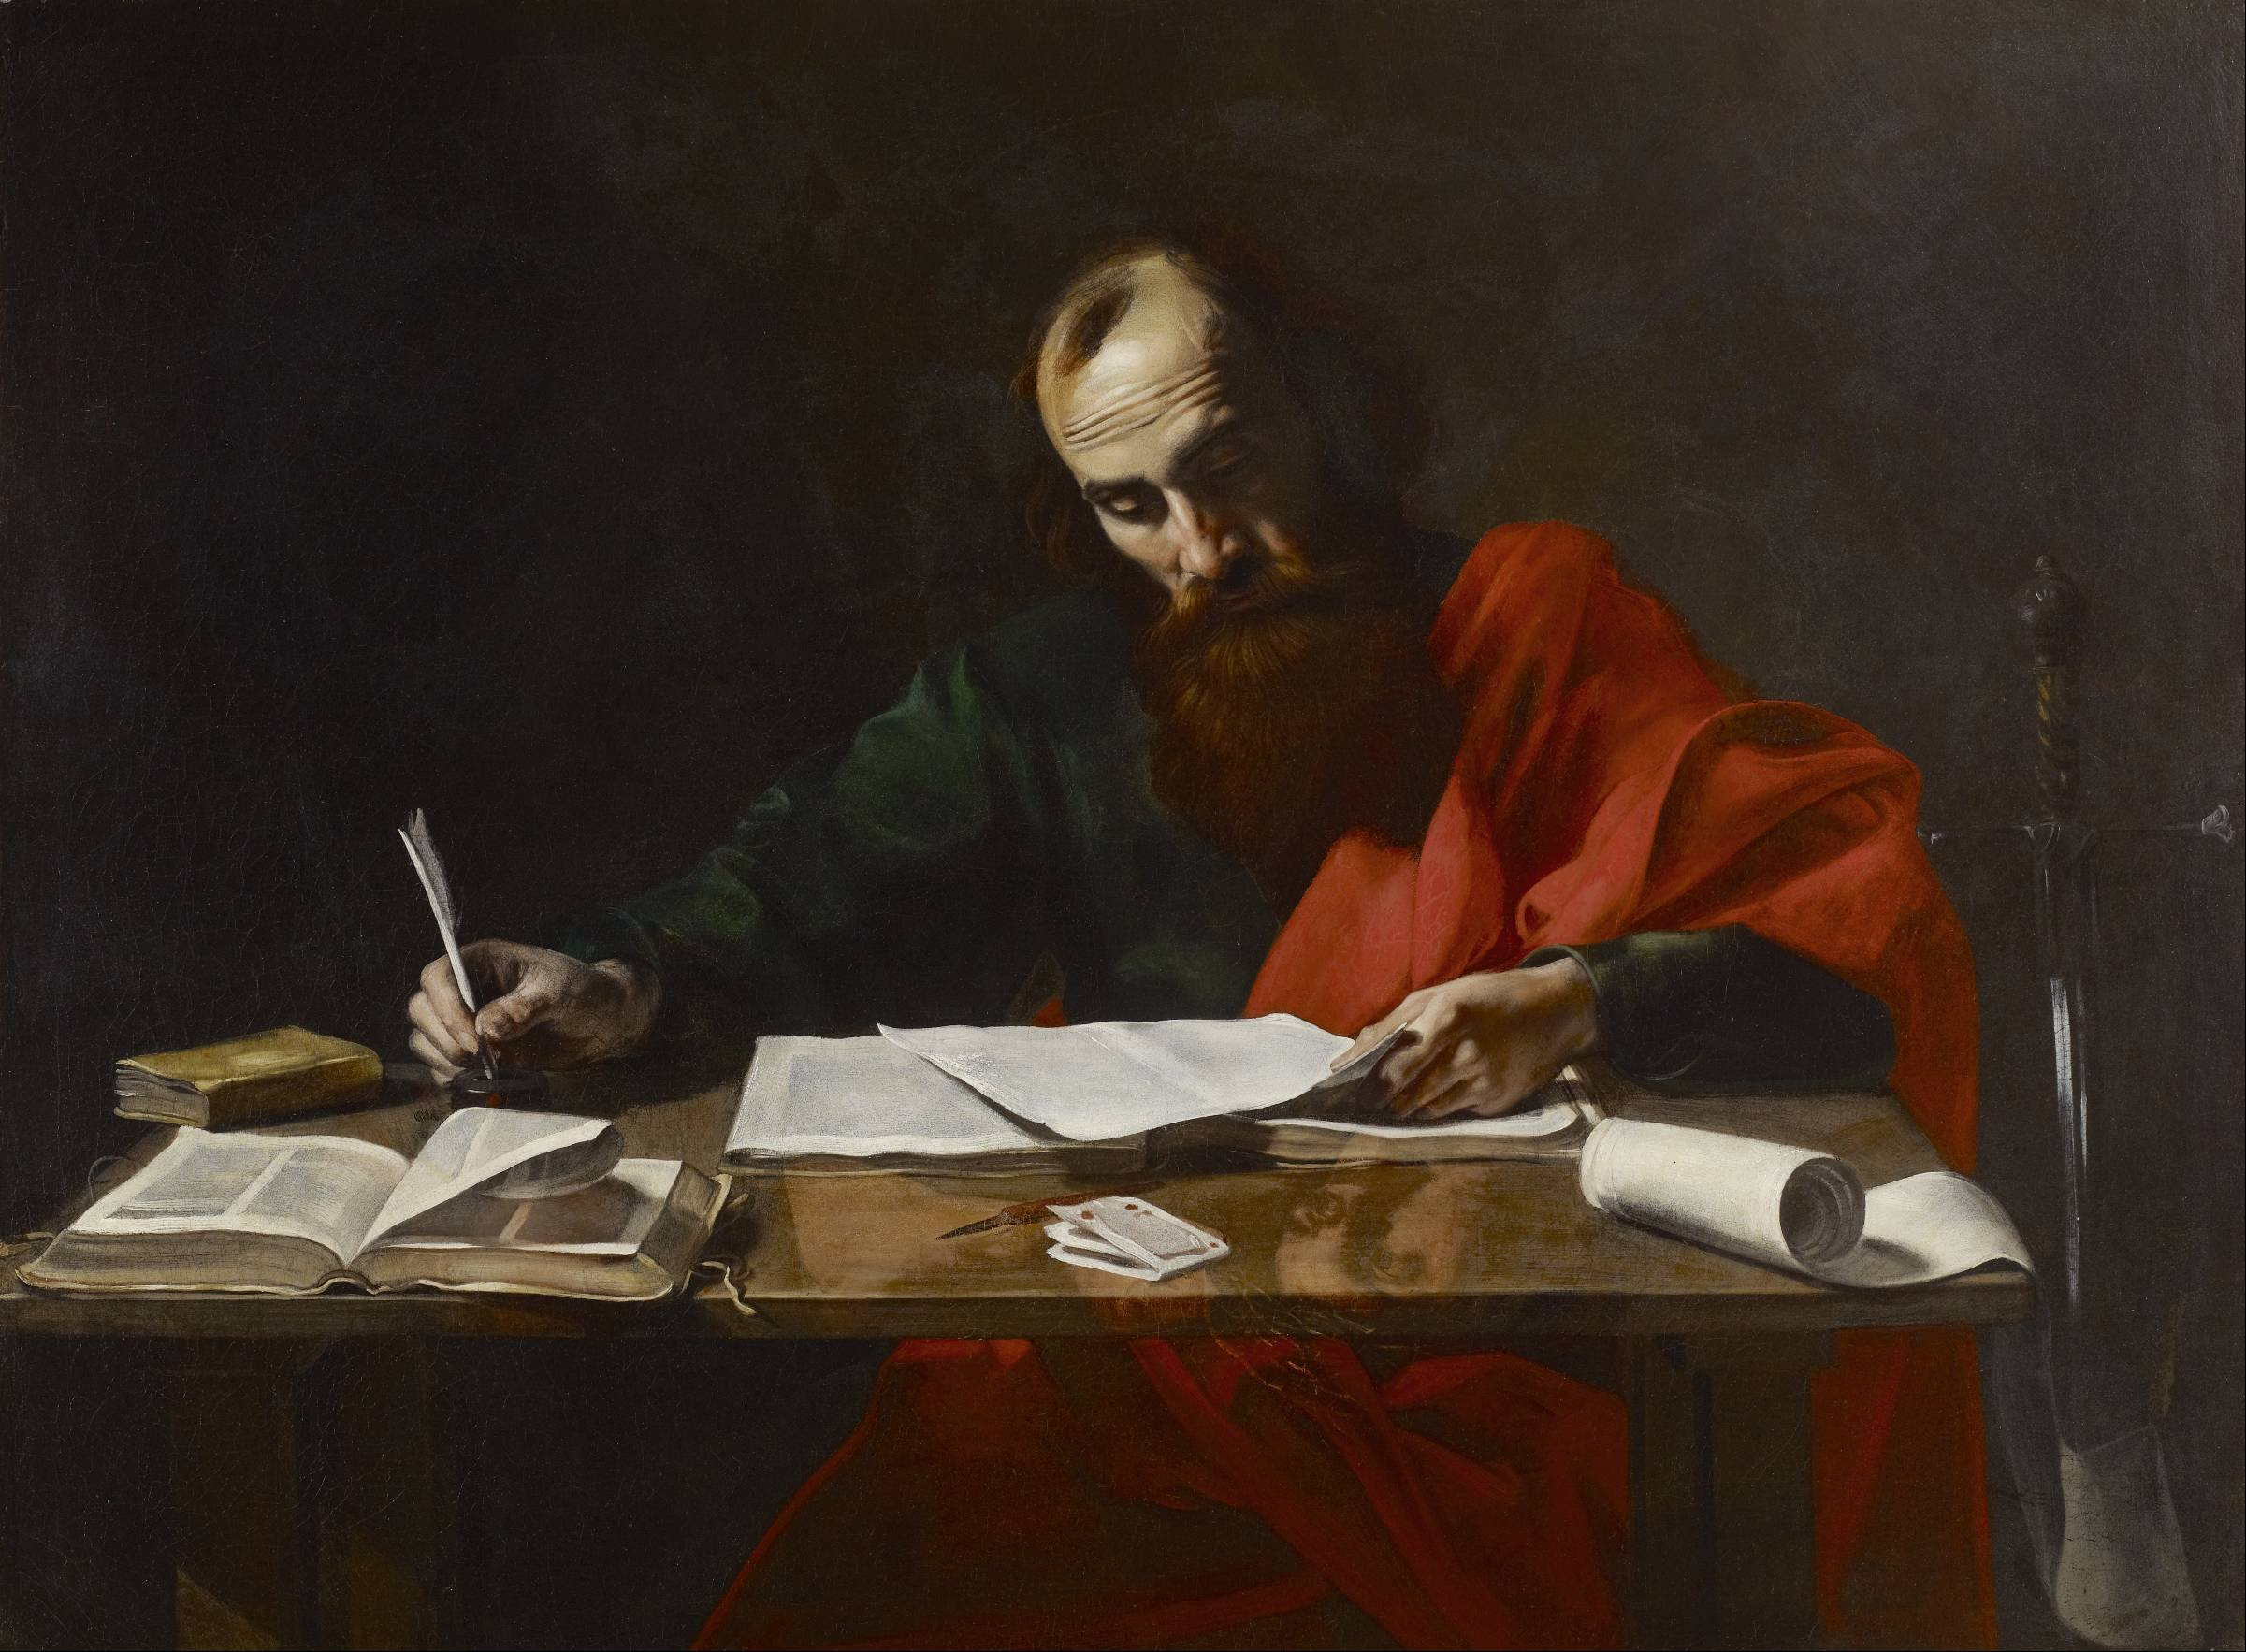 This image of Paul the letter writer is full of incorrect assumptions.